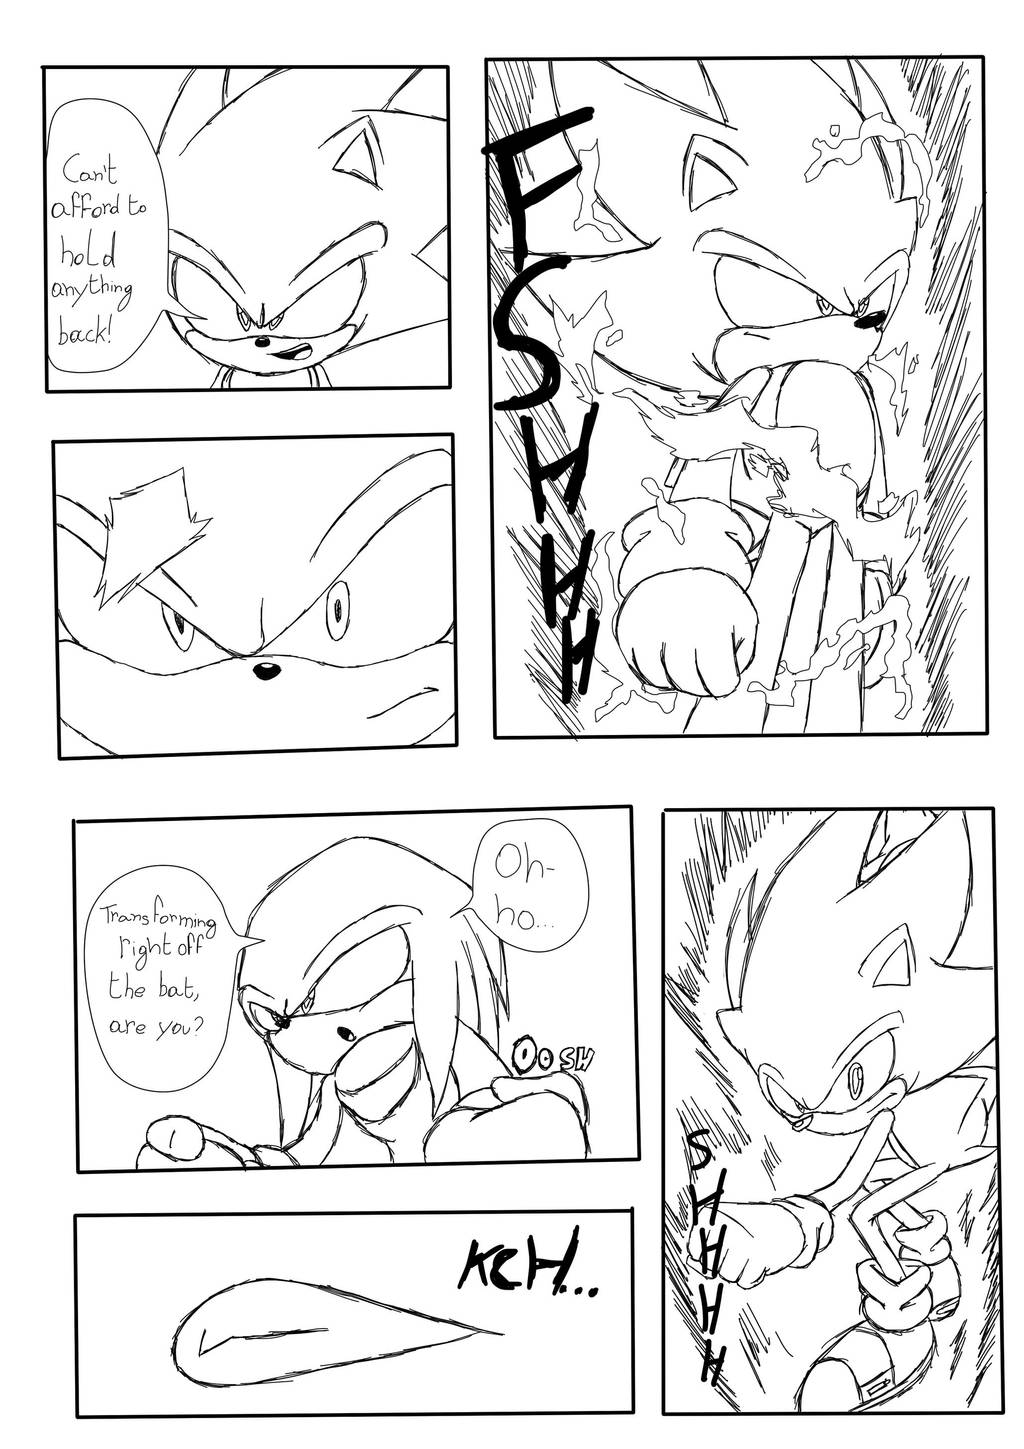 Sonic VS Knuckles Page 2 by JLuisJoni